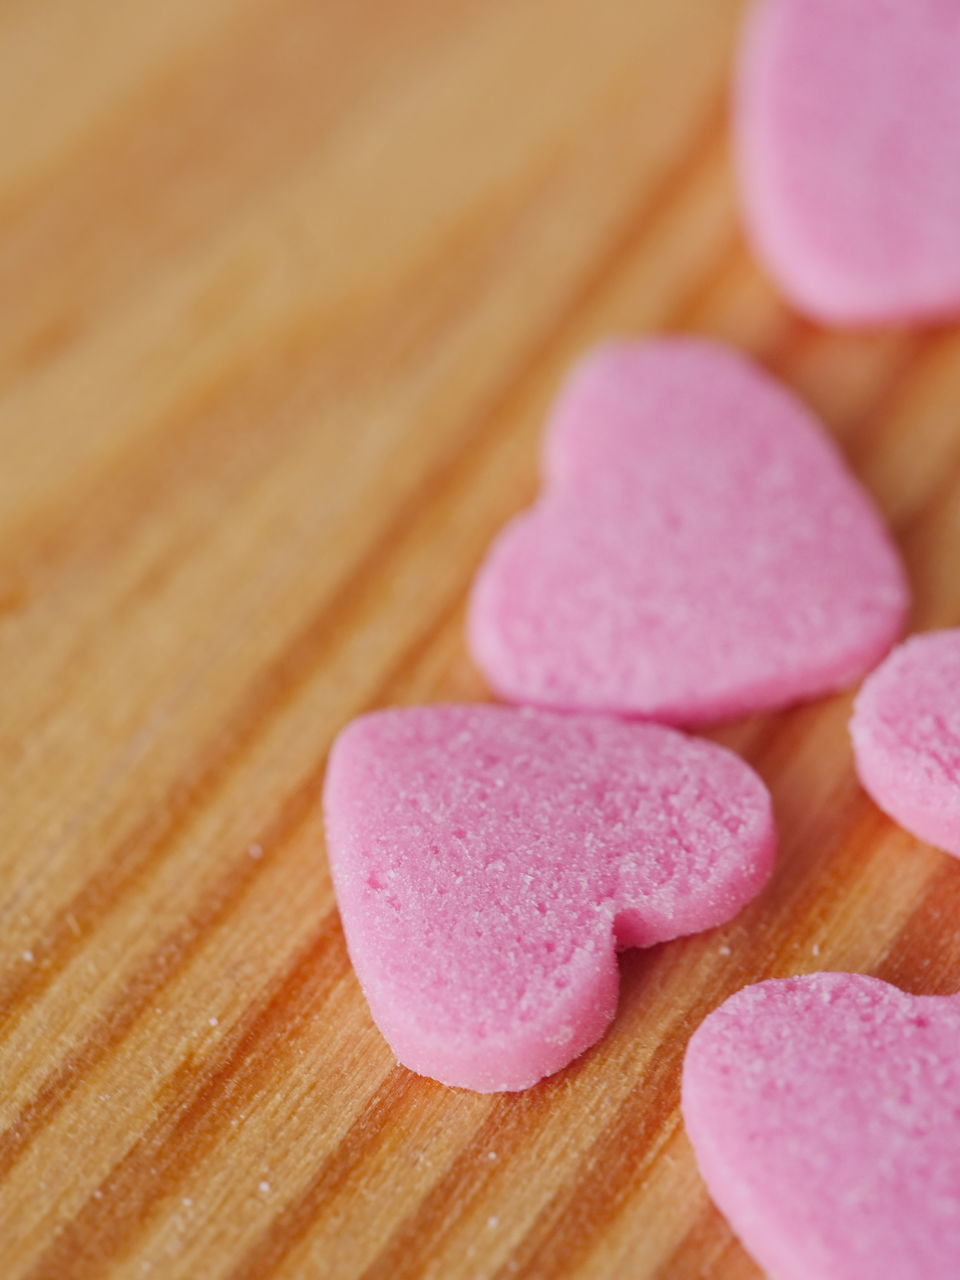 High Angle View Of Heart Shape Candies On Wooden Table